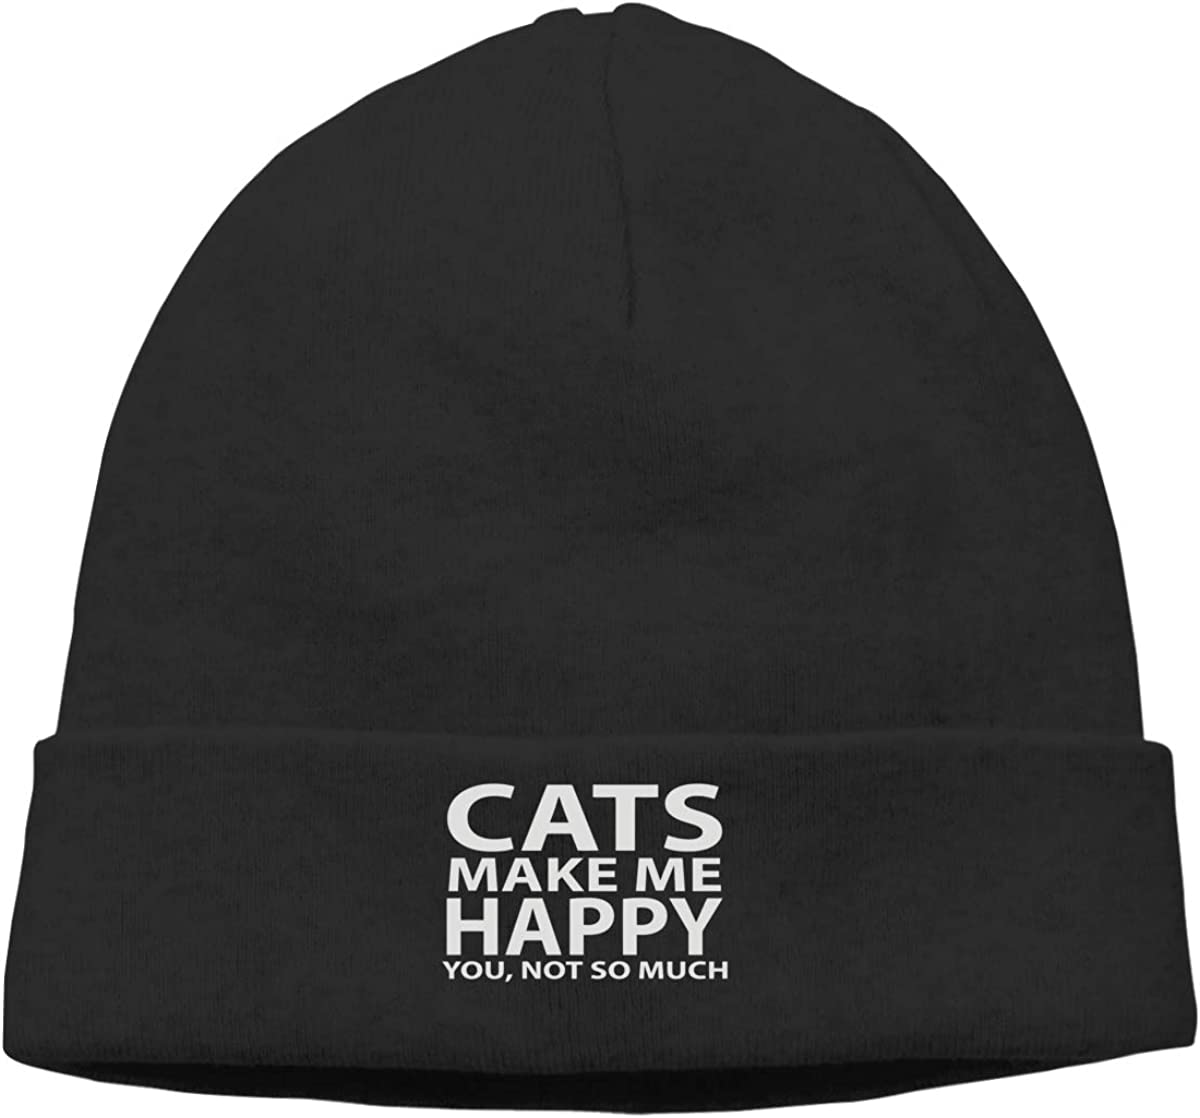 Cats Make Me Happy You Not So Much 1 Knit Caps Knit Hat Skull for Mens Black